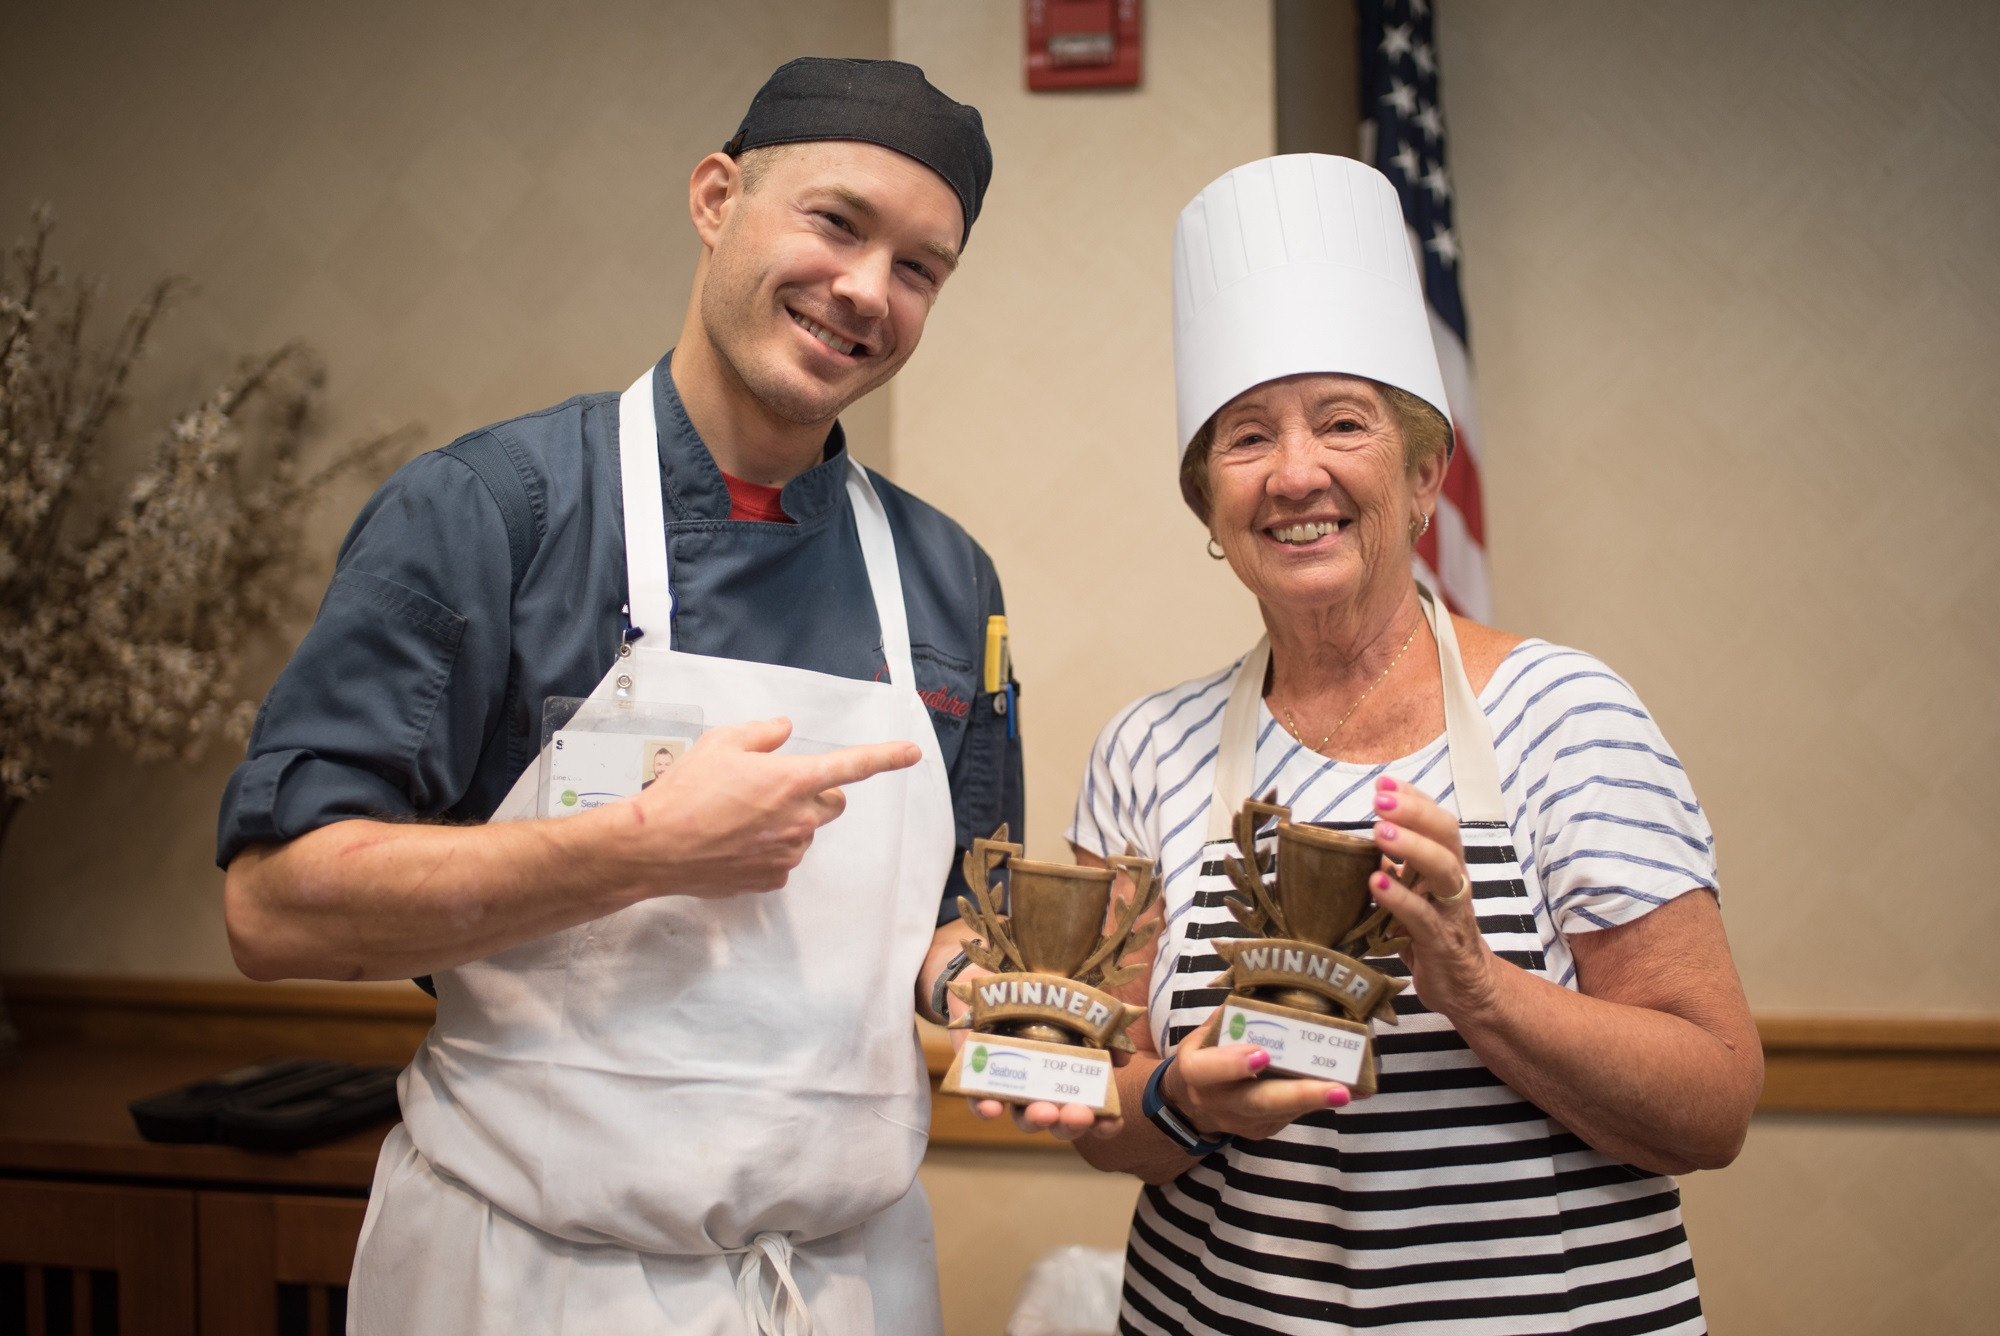 Seabrook Chef and resident hold Top Chef trophy